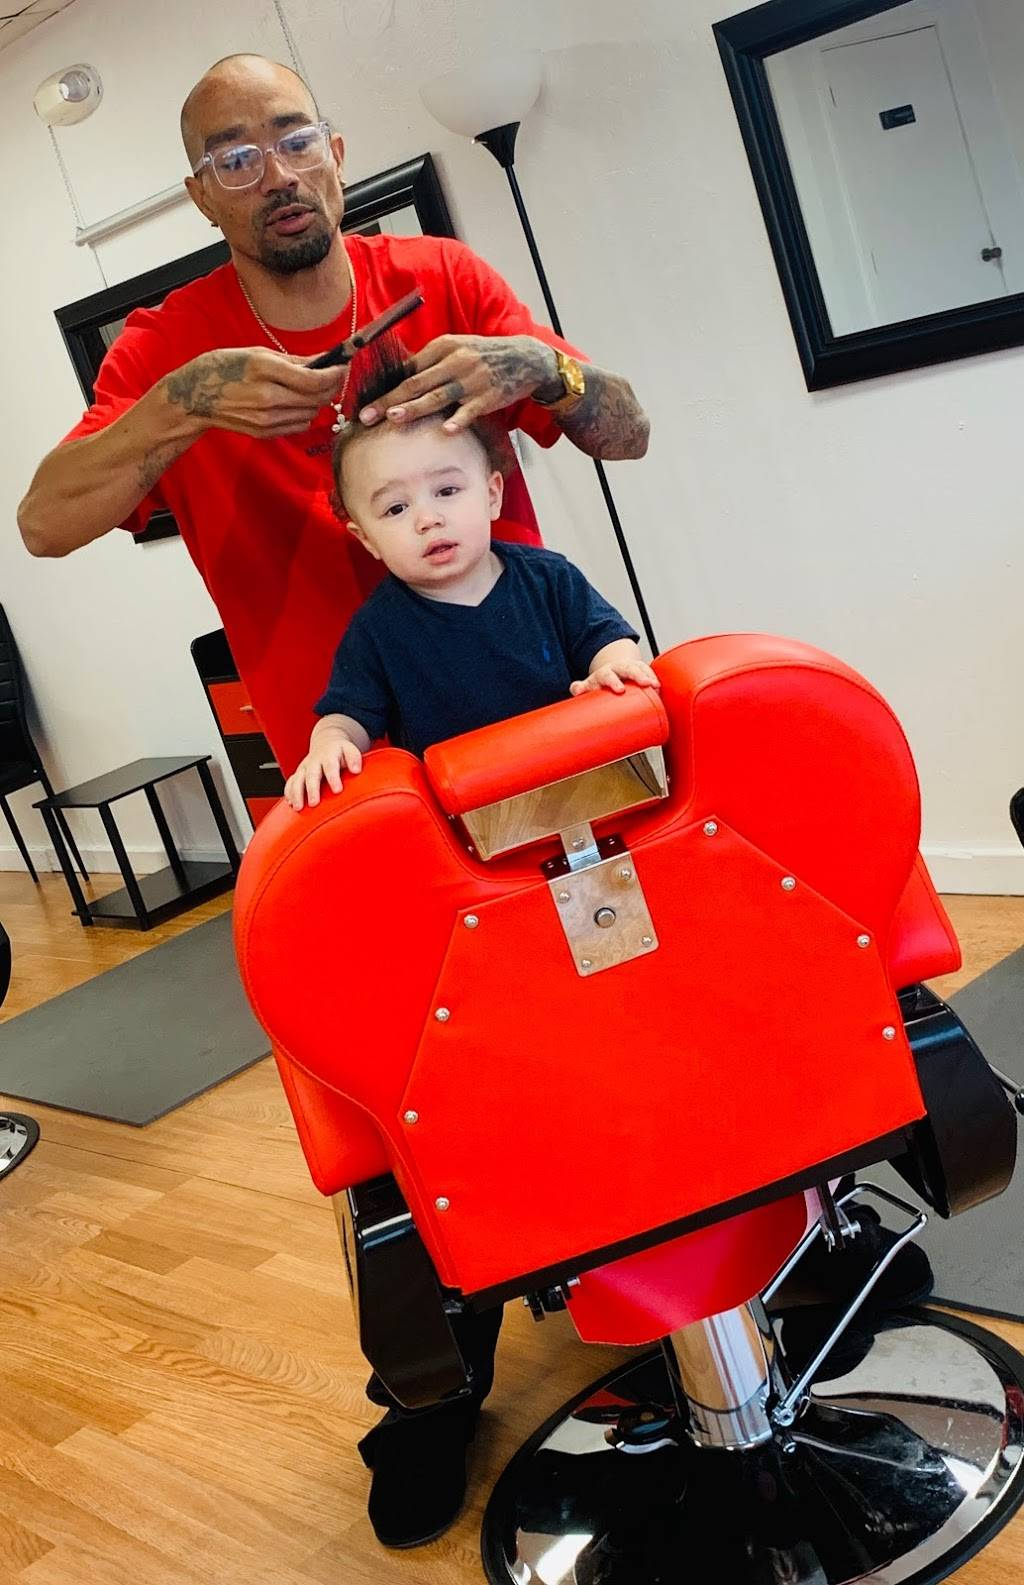 The After Hour Barbershop - hair care  | Photo 8 of 9 | Address: 12272 NE 23rd St, Choctaw, OK 73020, USA | Phone: (405) 339-1440